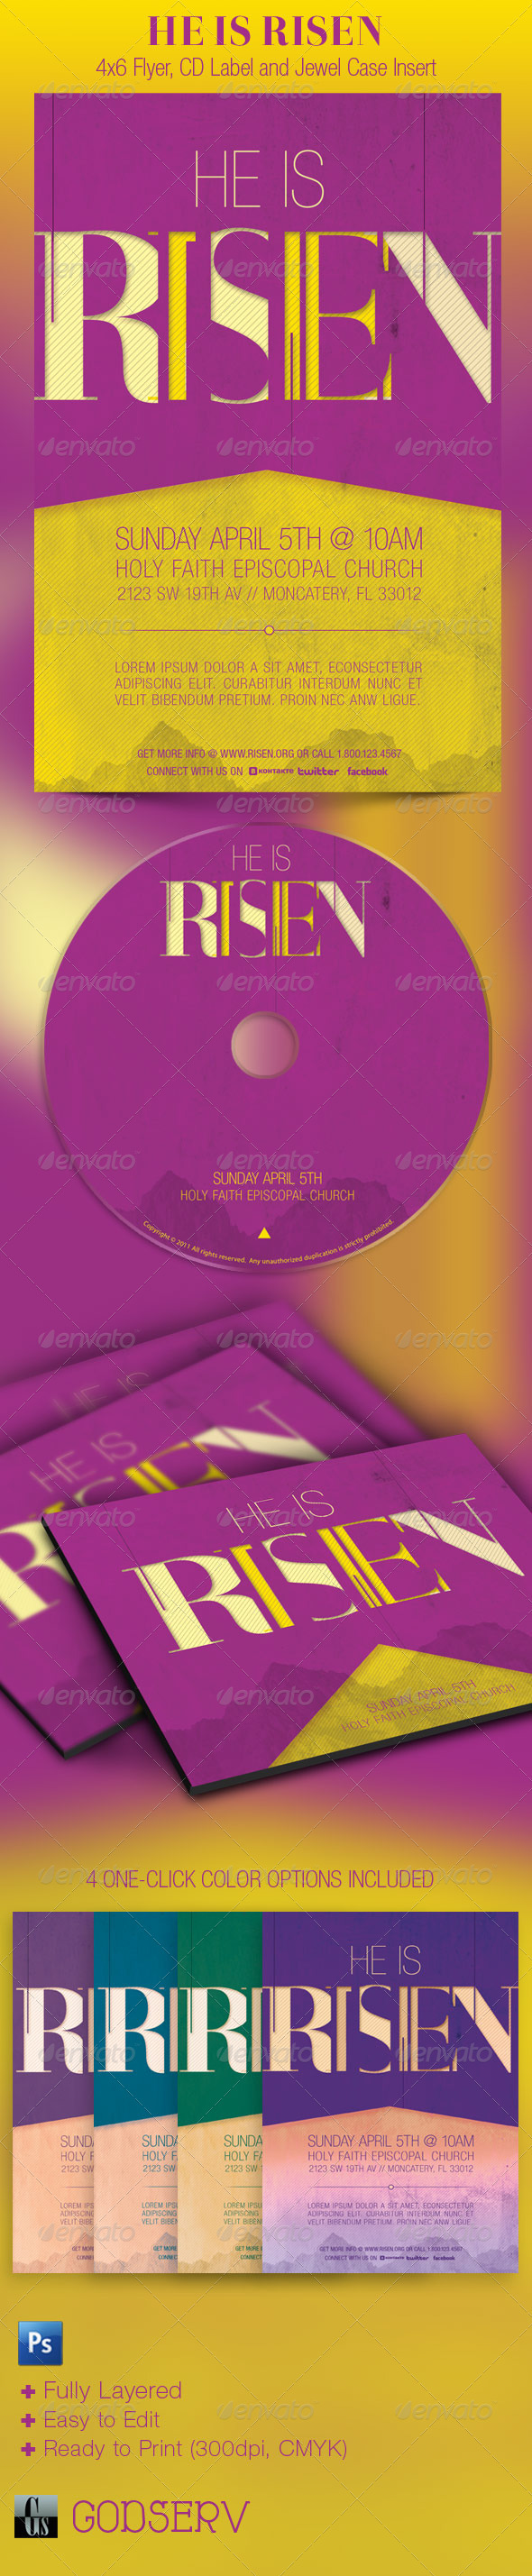 GraphicRiver He Is Risen Church Flyer and CD Template 1947156